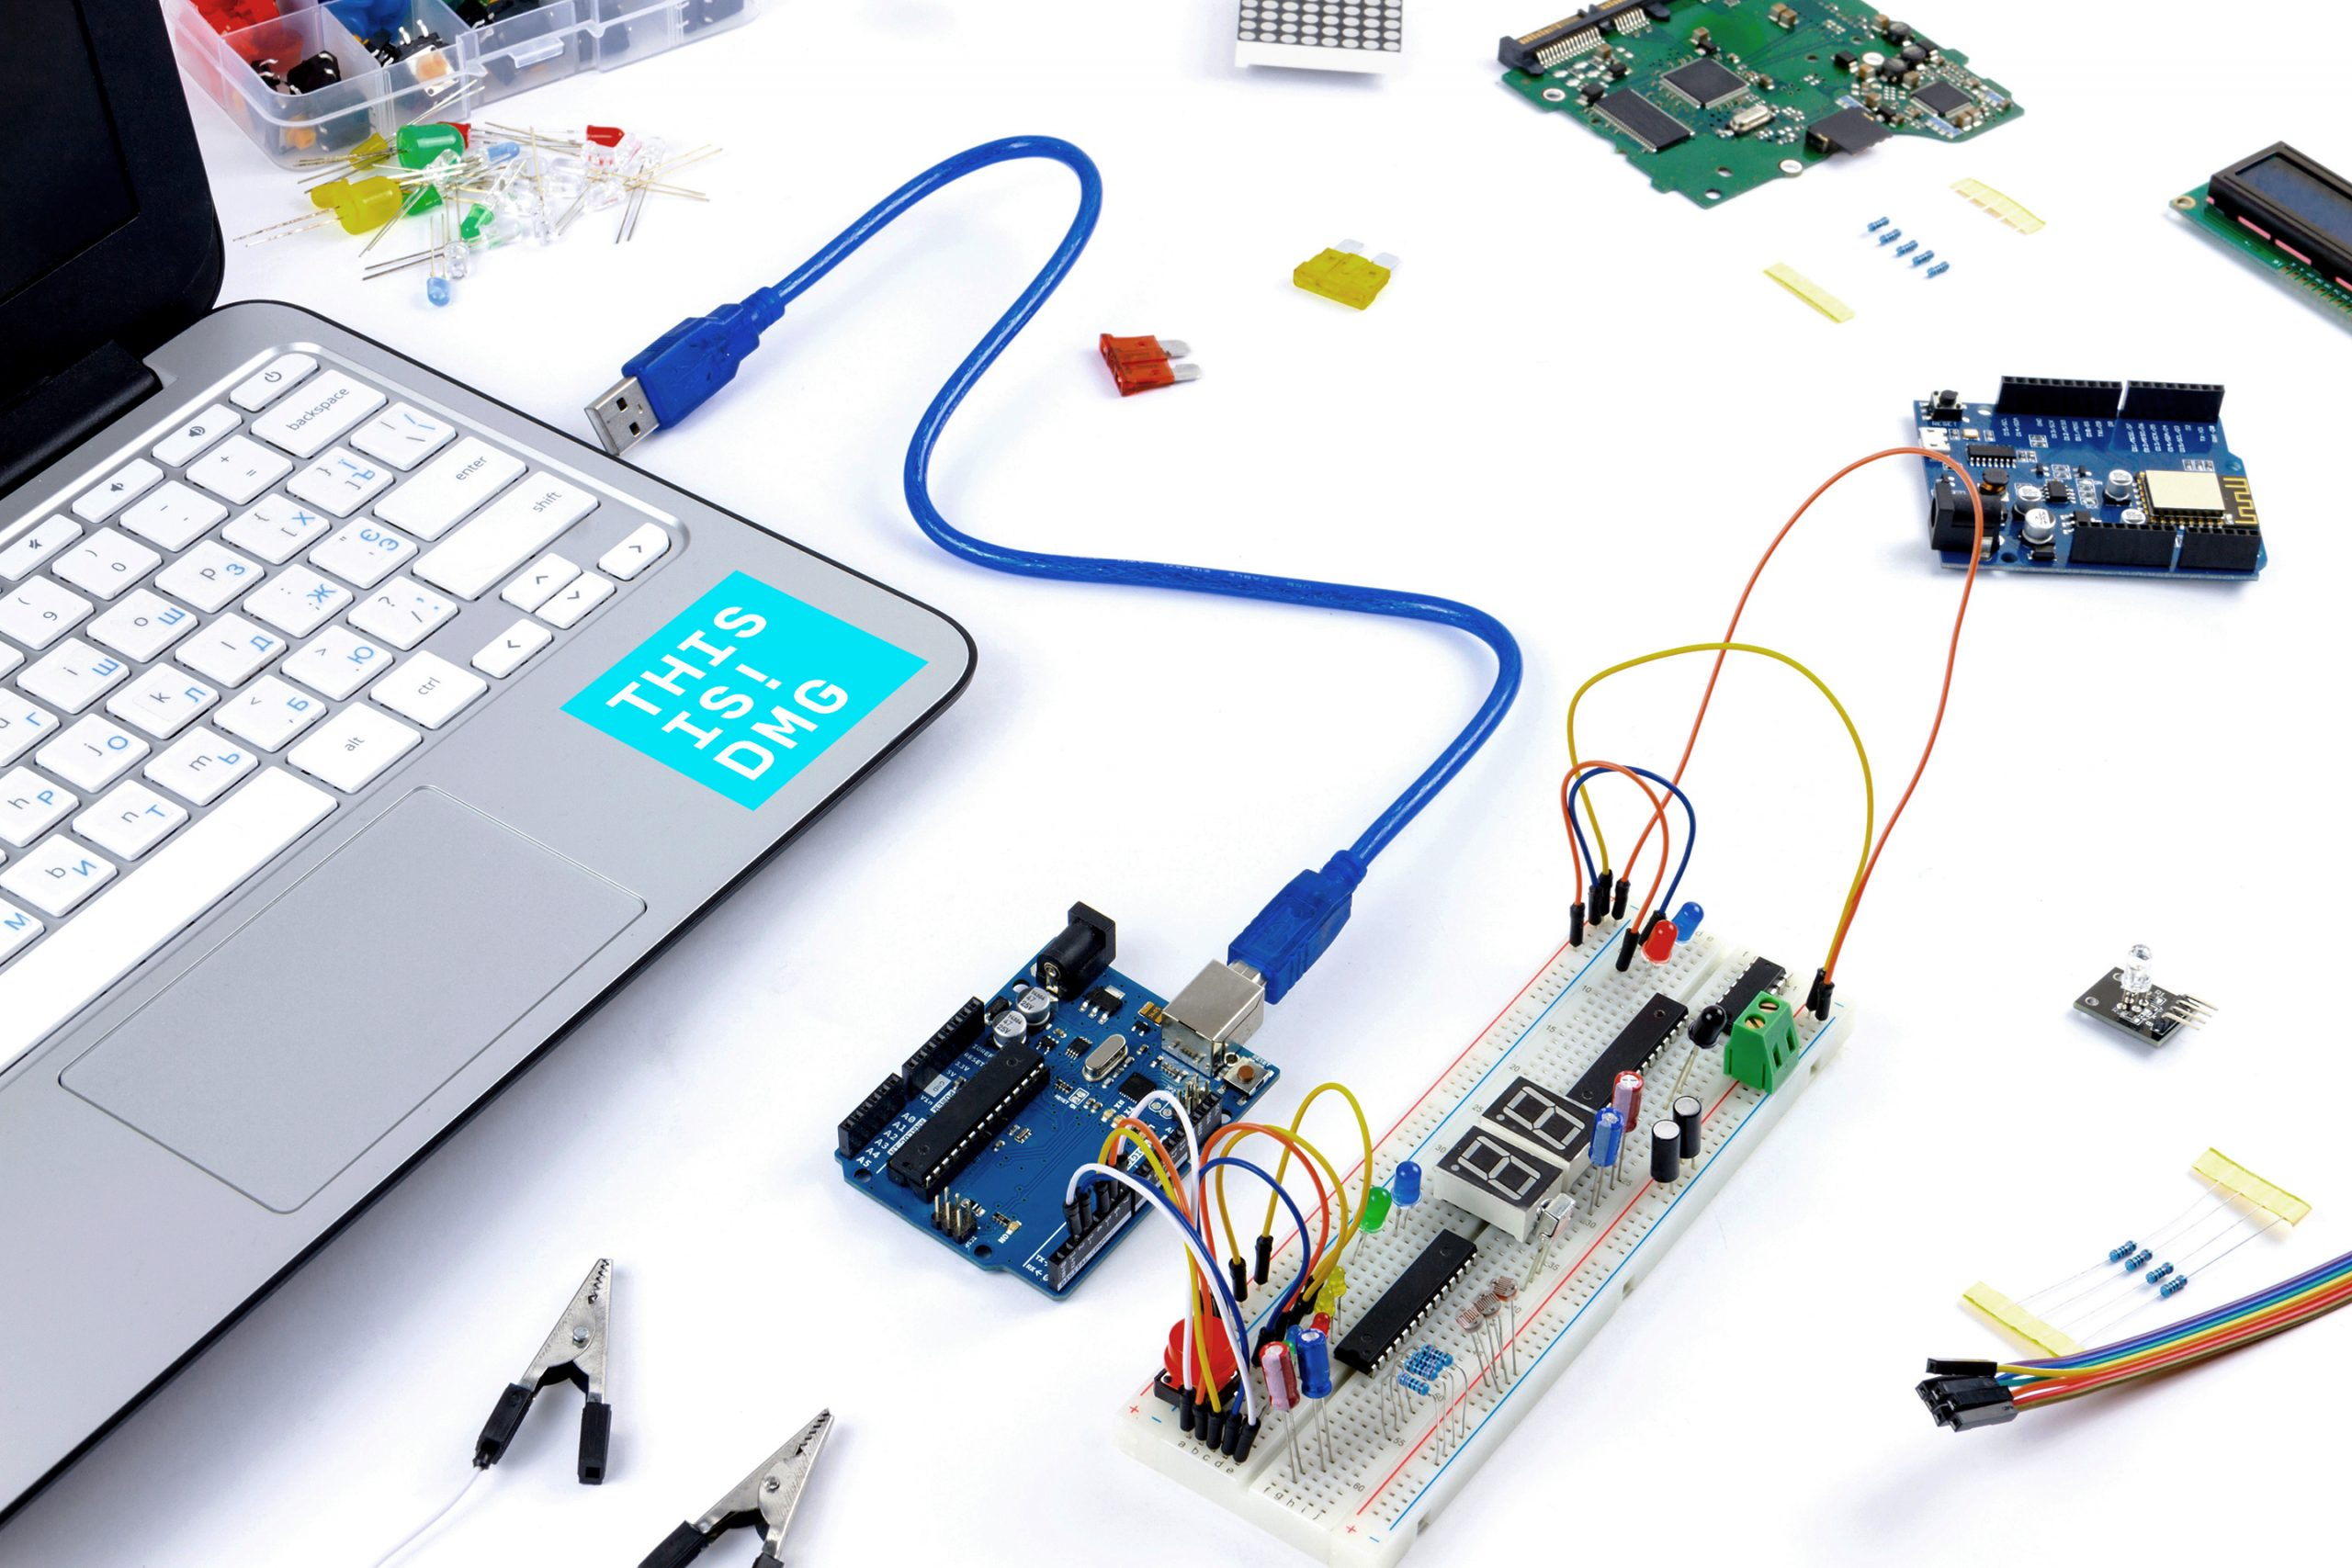 Laptop-and-hardware-IoT-DMG